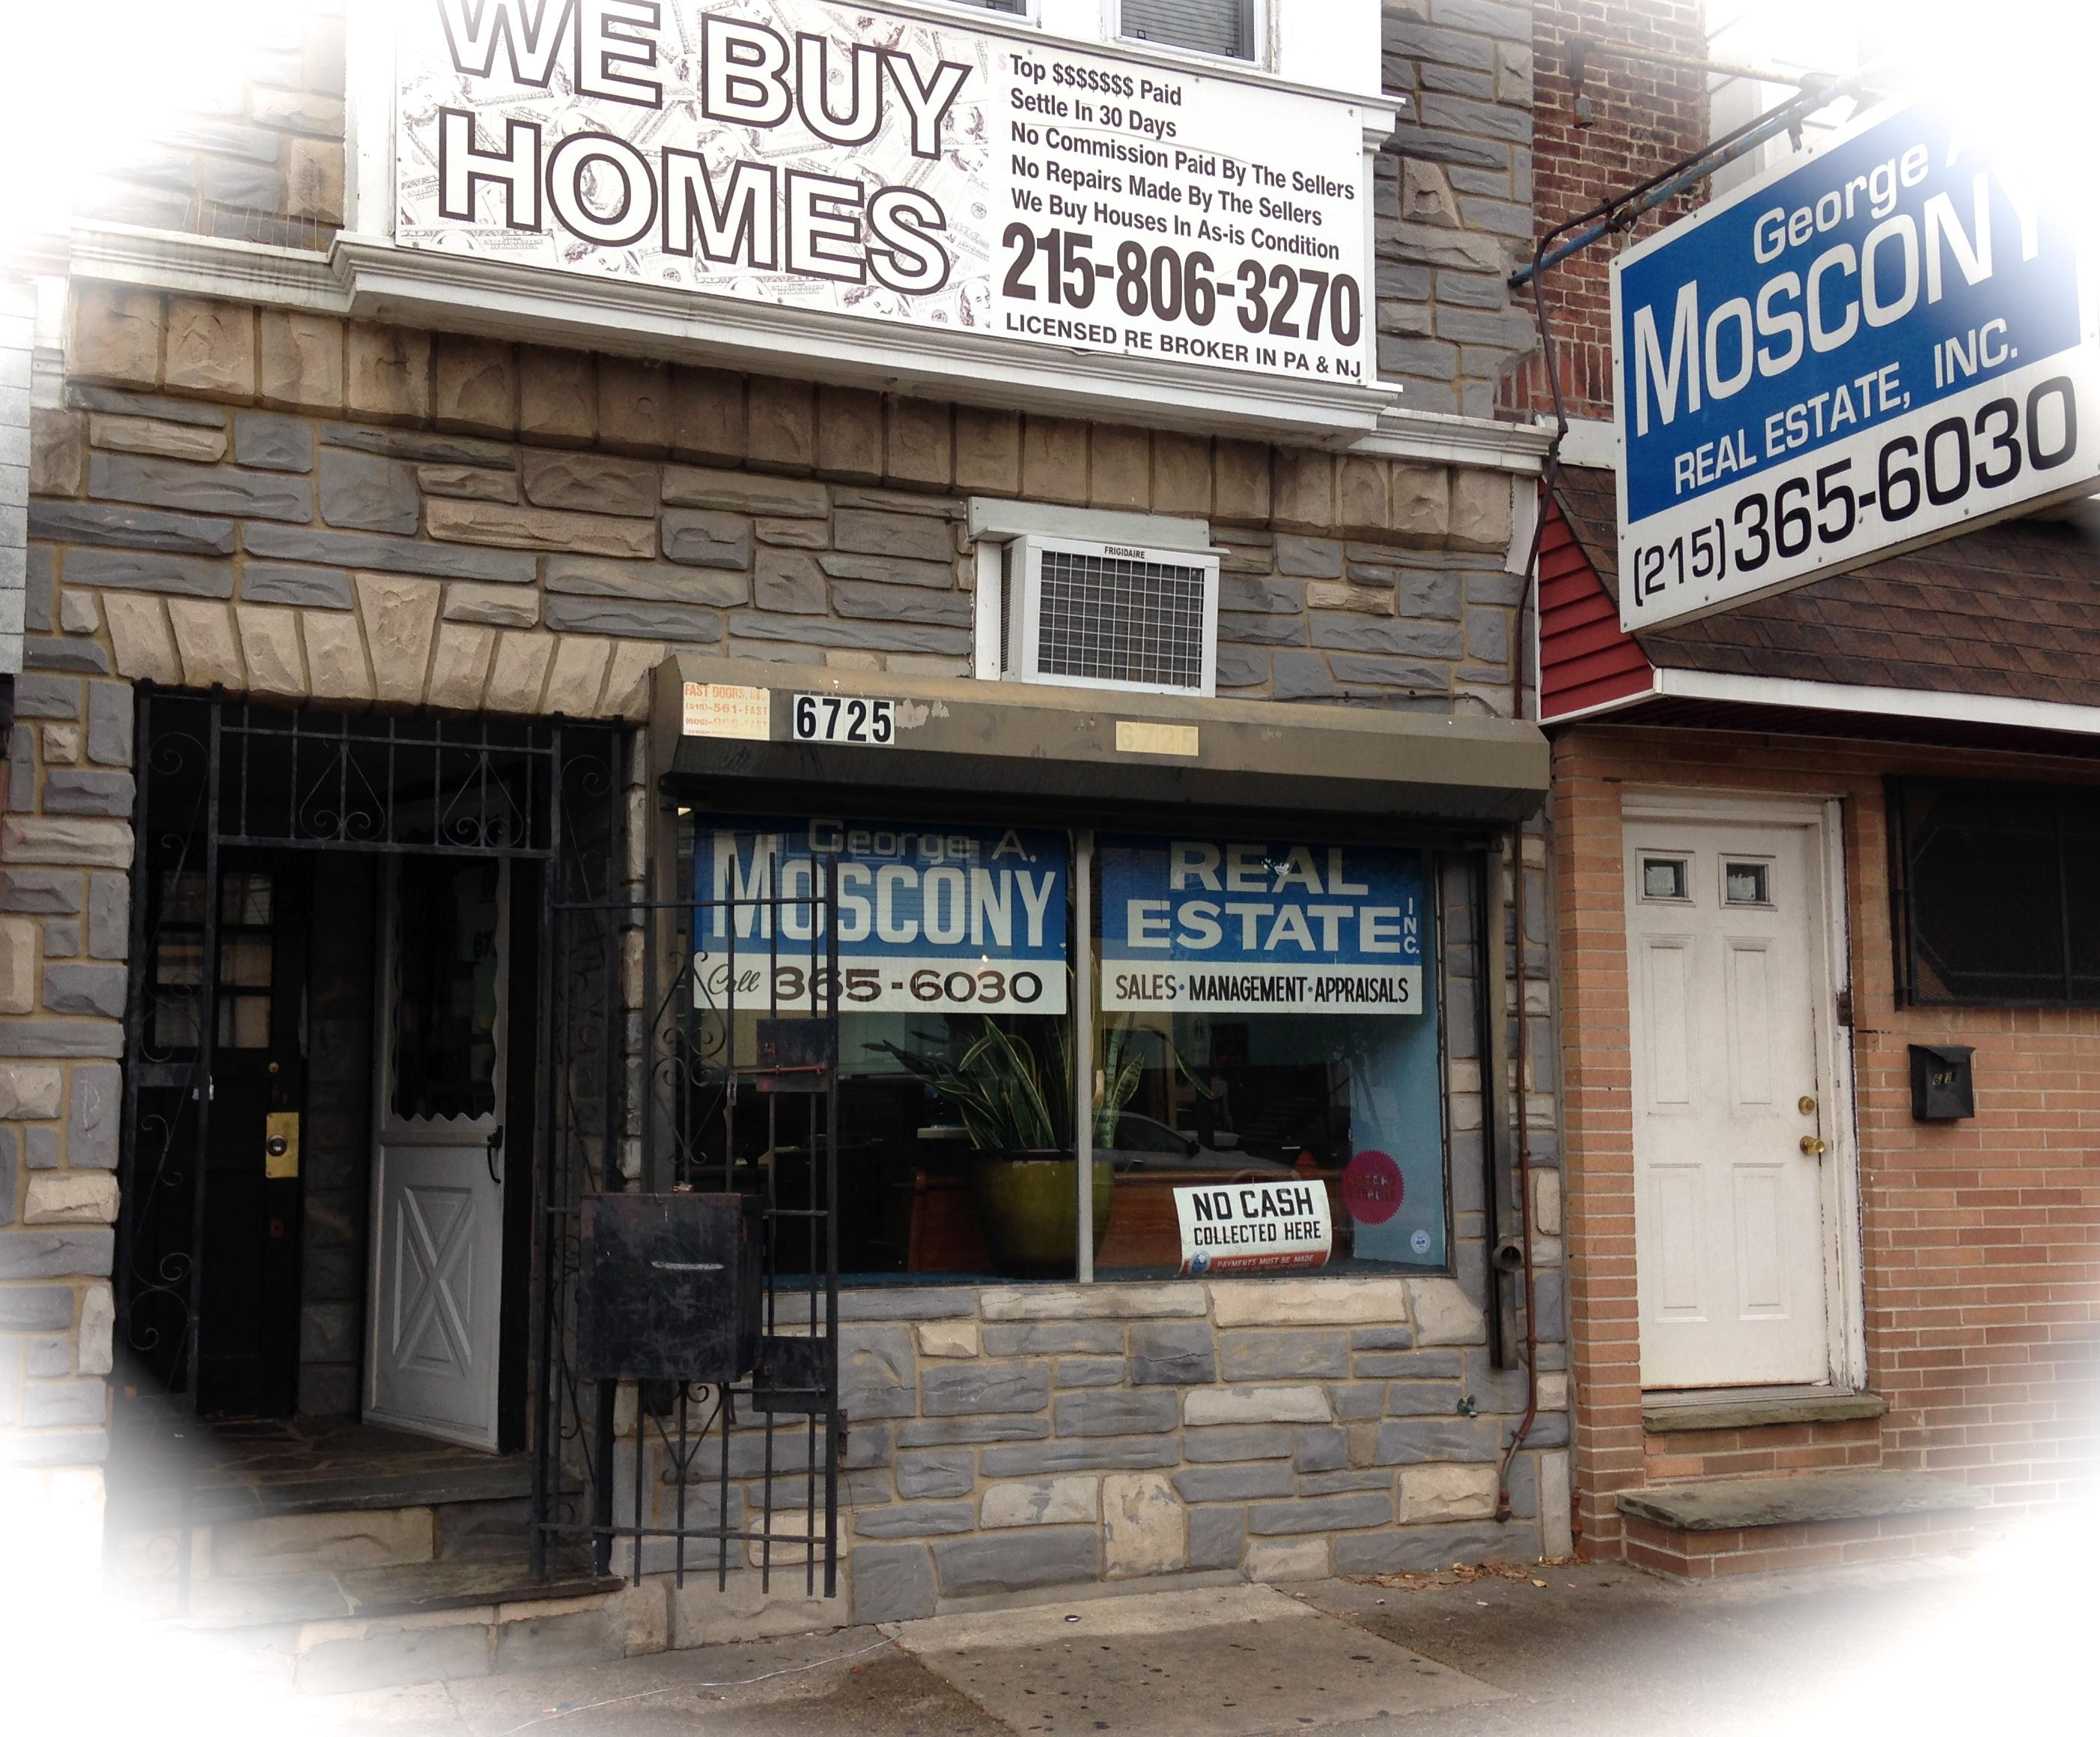 George A Moscony Real Estate Inc